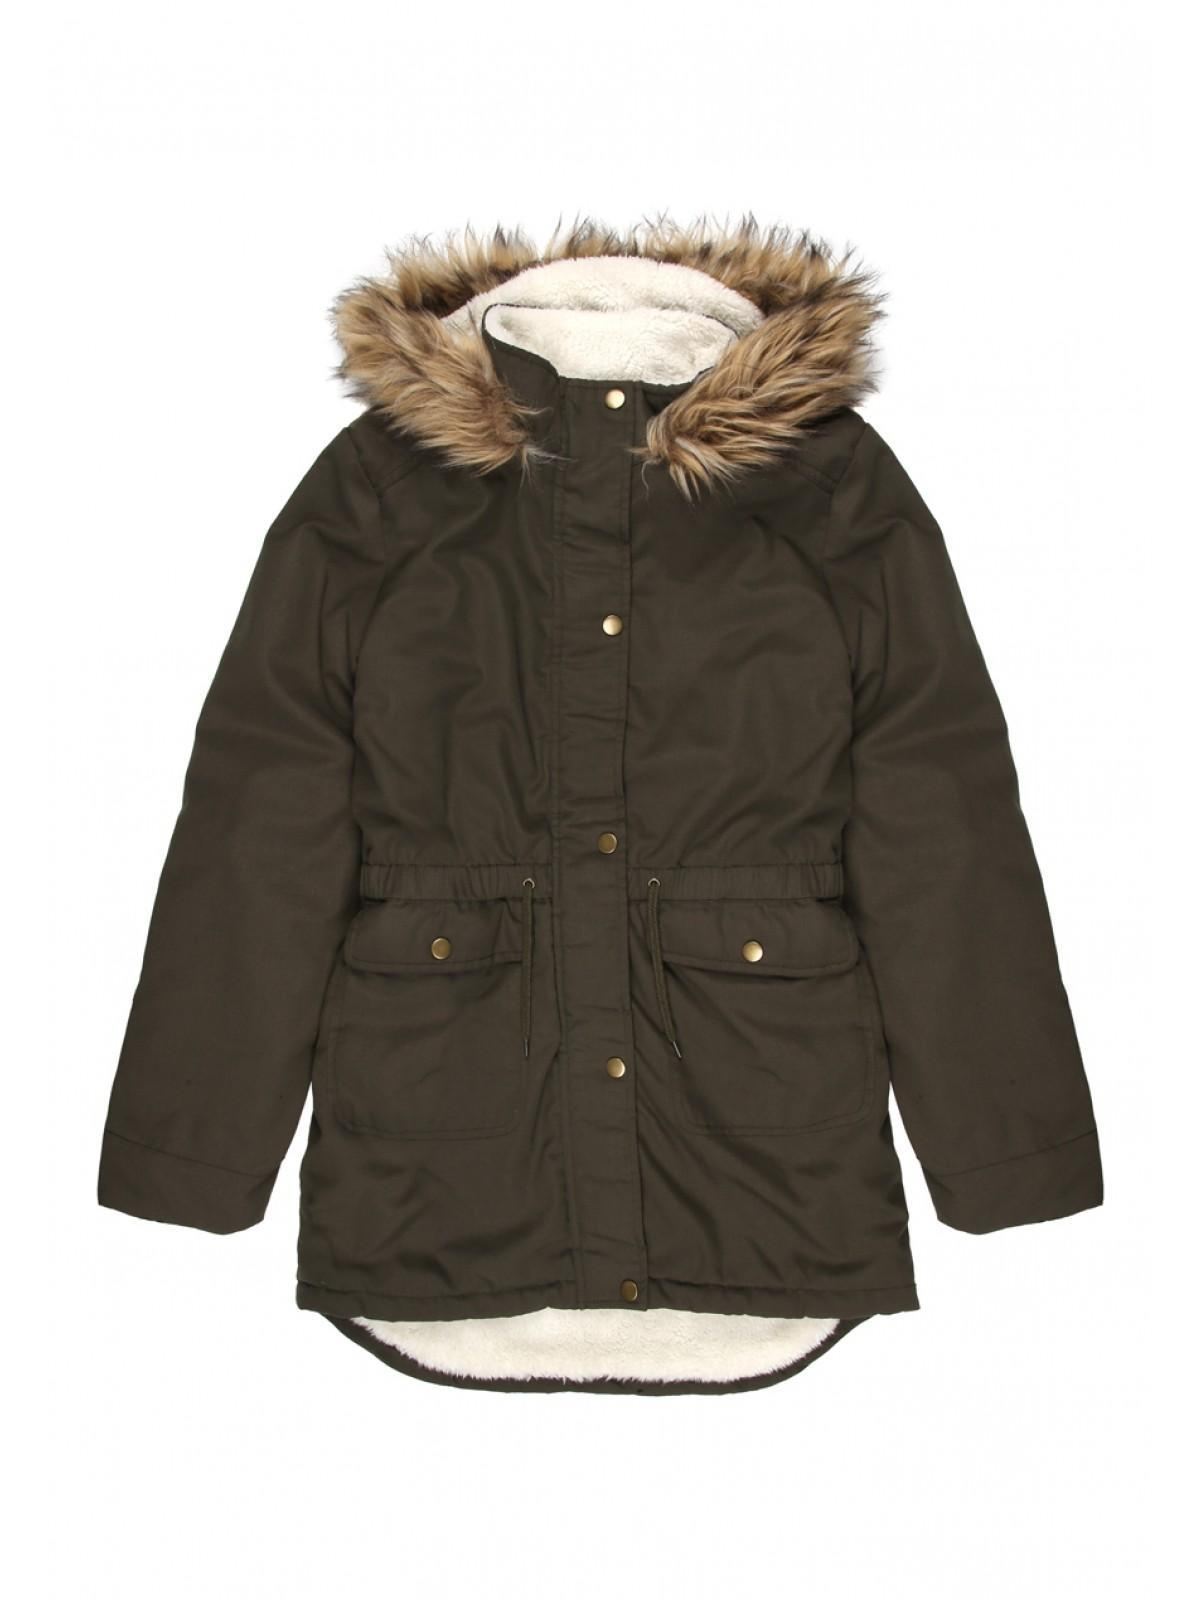 Girls Older Girls Khaki Parka Jacket | Peacocks